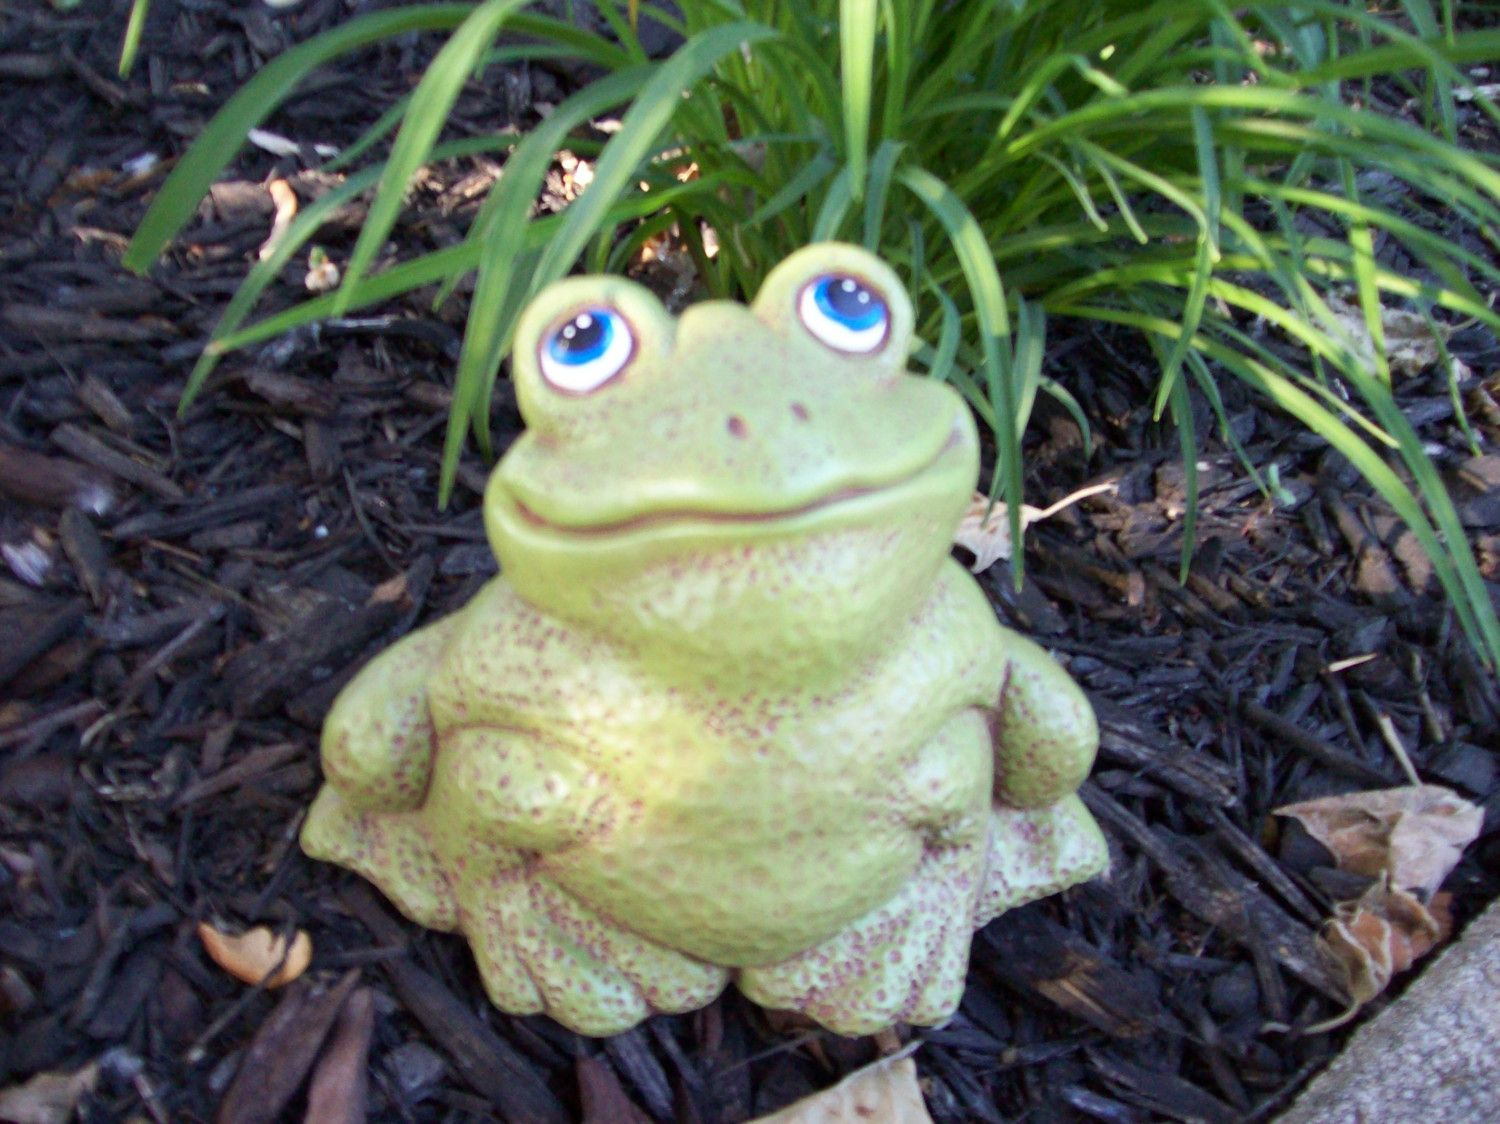 decor decoration frog blue eyes plant outdoor frog yellow small